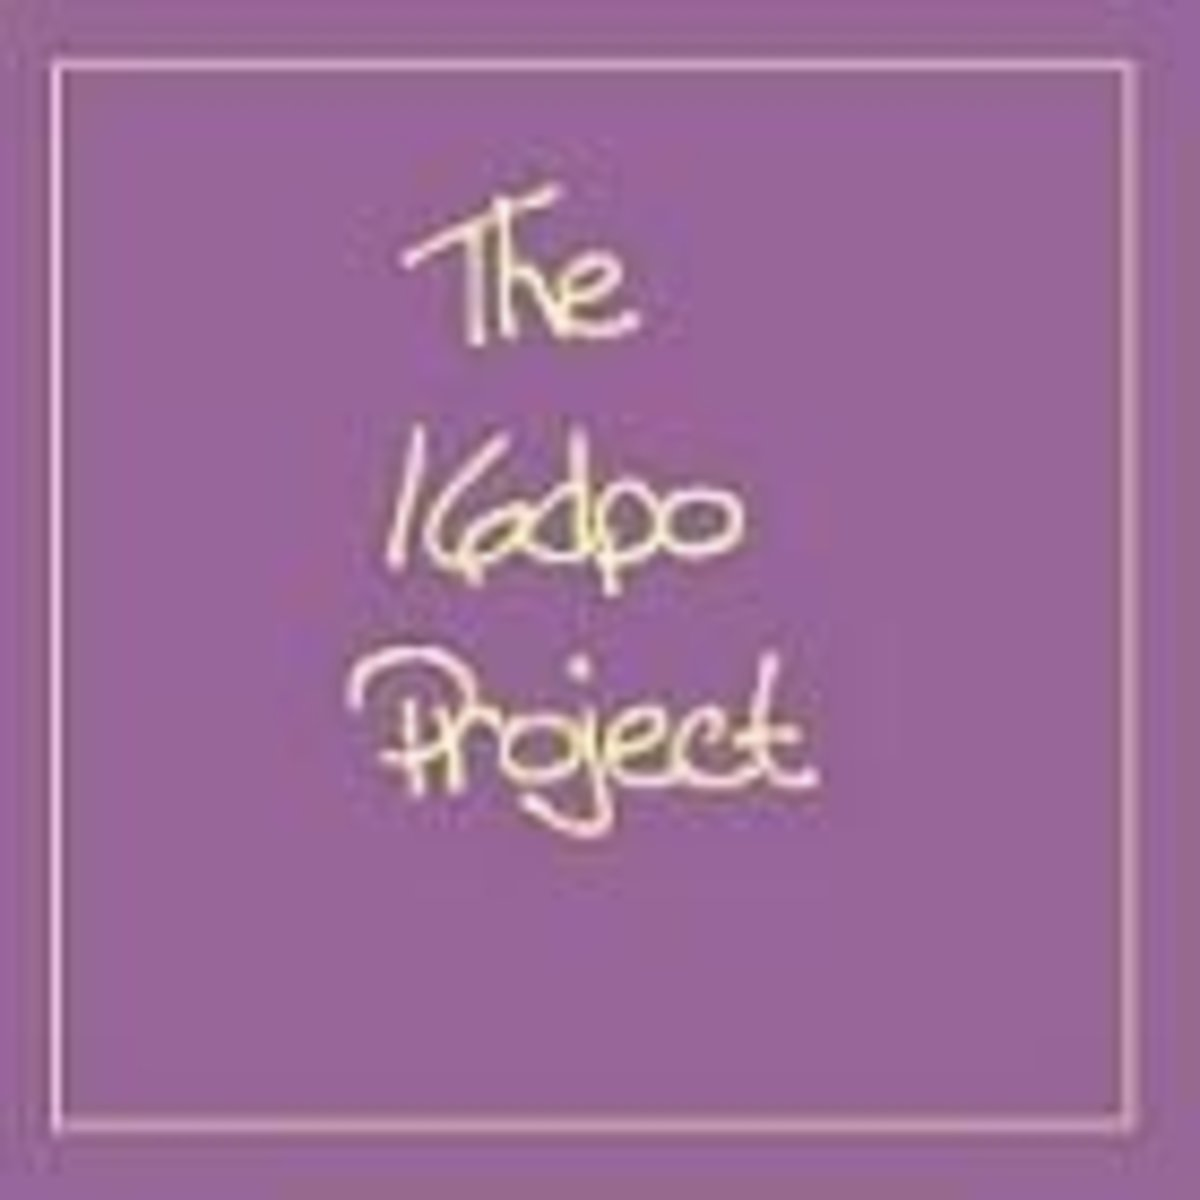 The 16 DPO Project | HubPages